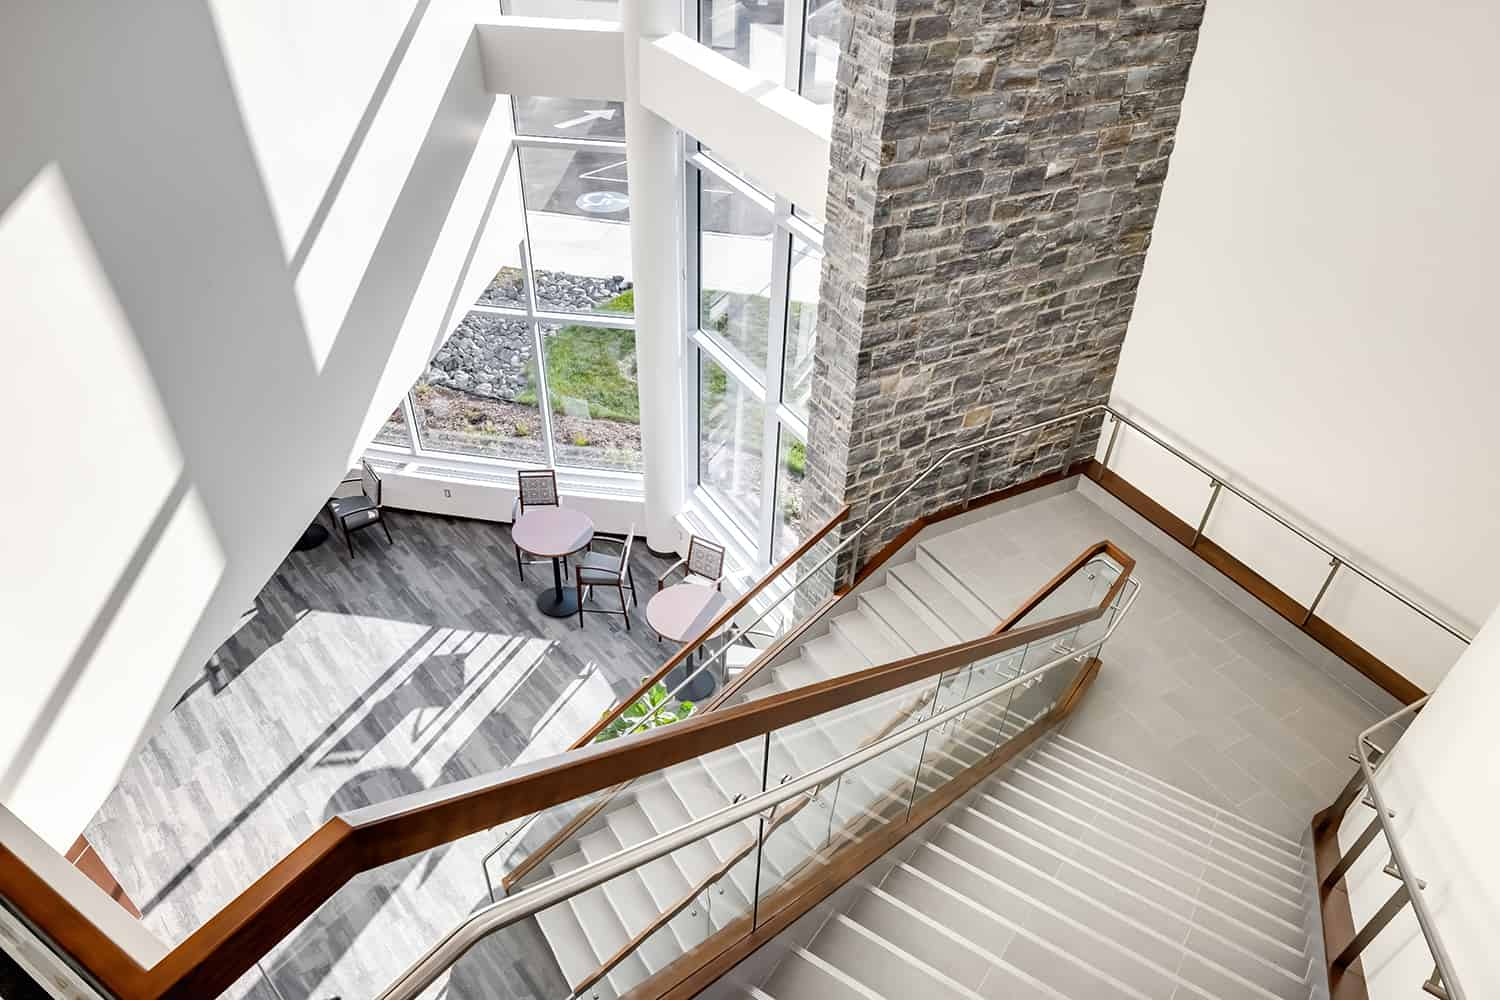 Looking down into the new wrapping stairwell leading to the hospital.